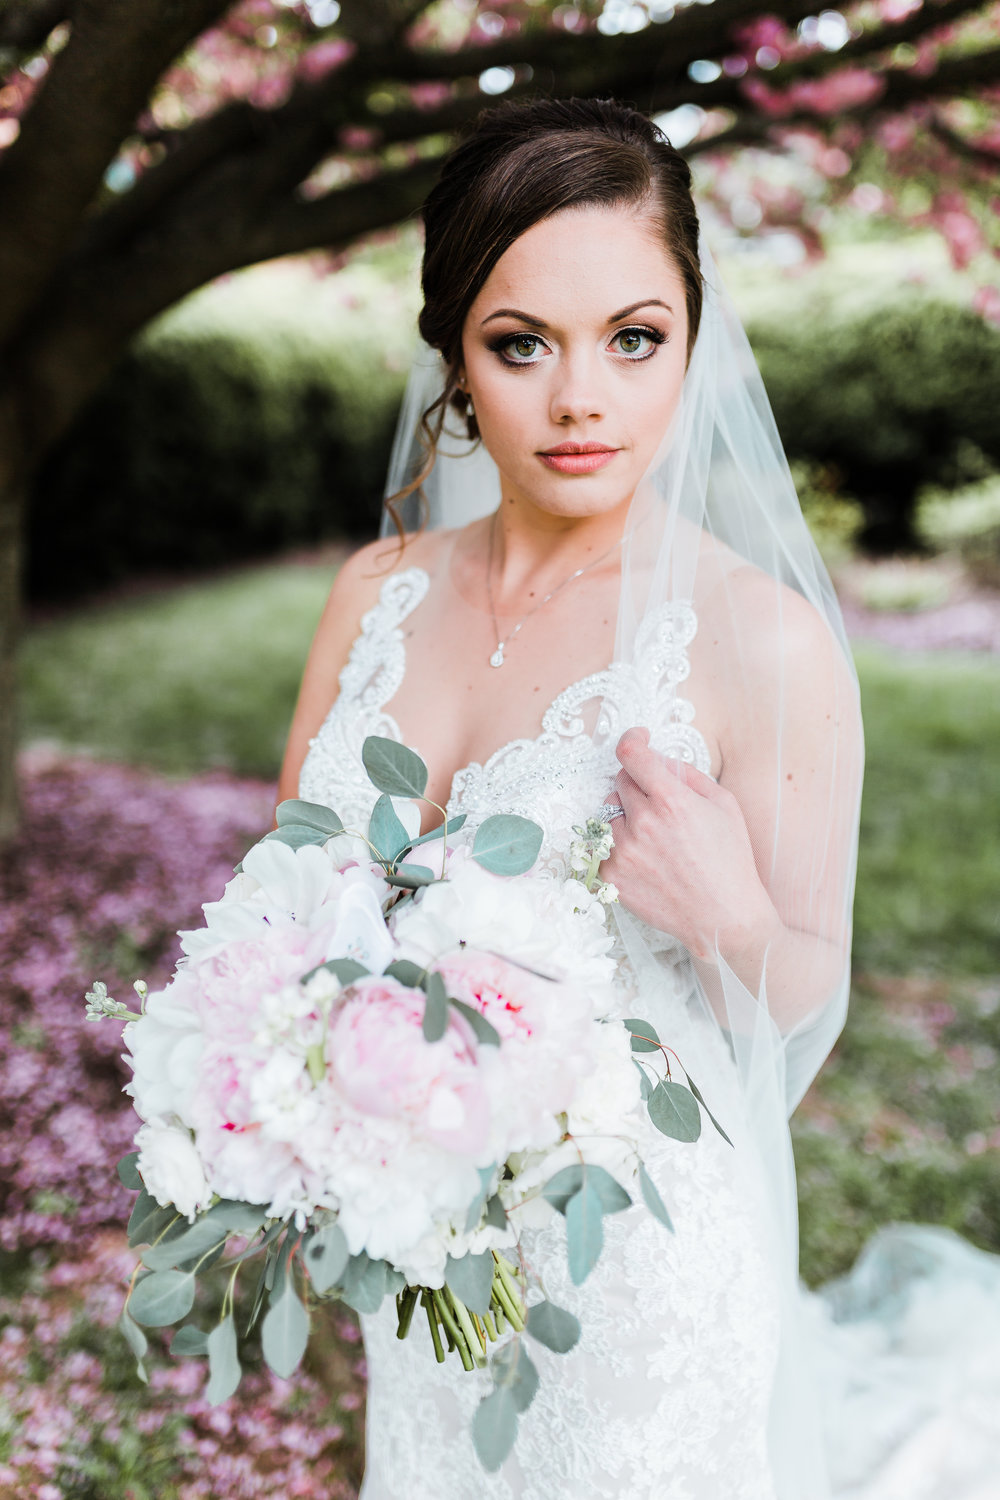 gorgeous bride on her wedding day - bridal portraits